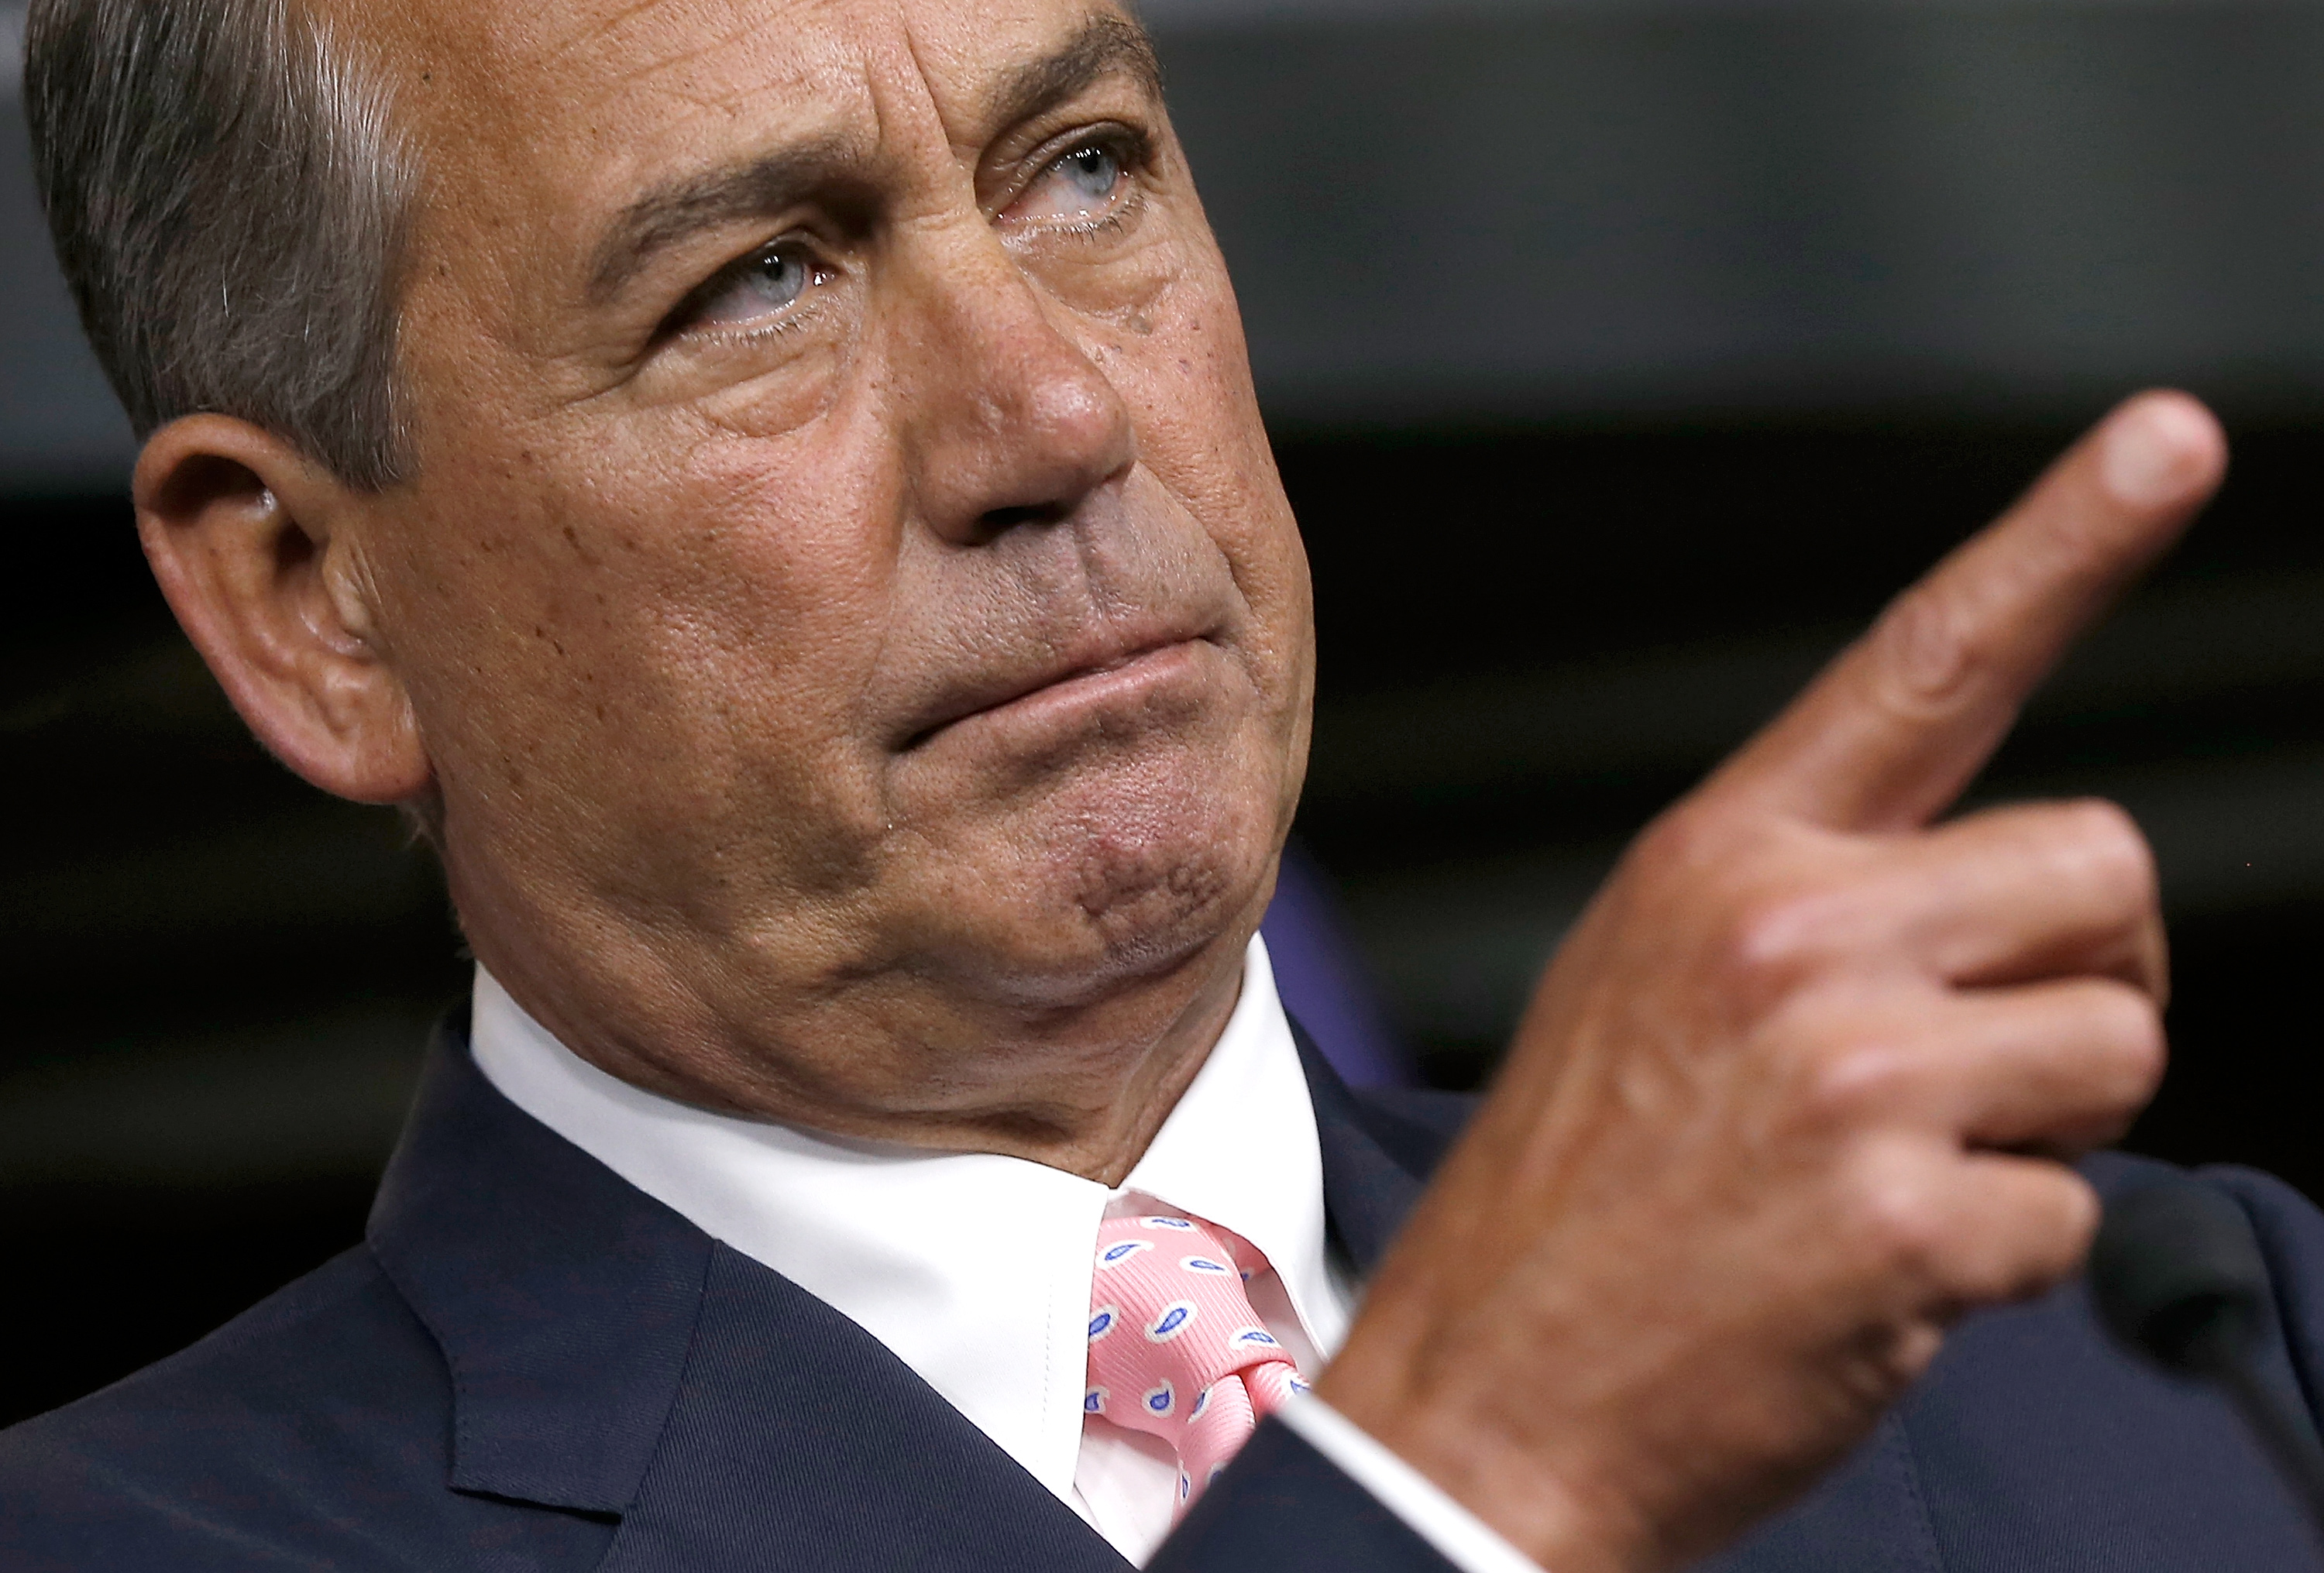 U.S. Speaker of the House John Boehner (R-OH) answers questions during a press conference at the U.S. Capitol July 24, 2014 in Washington, D.C.